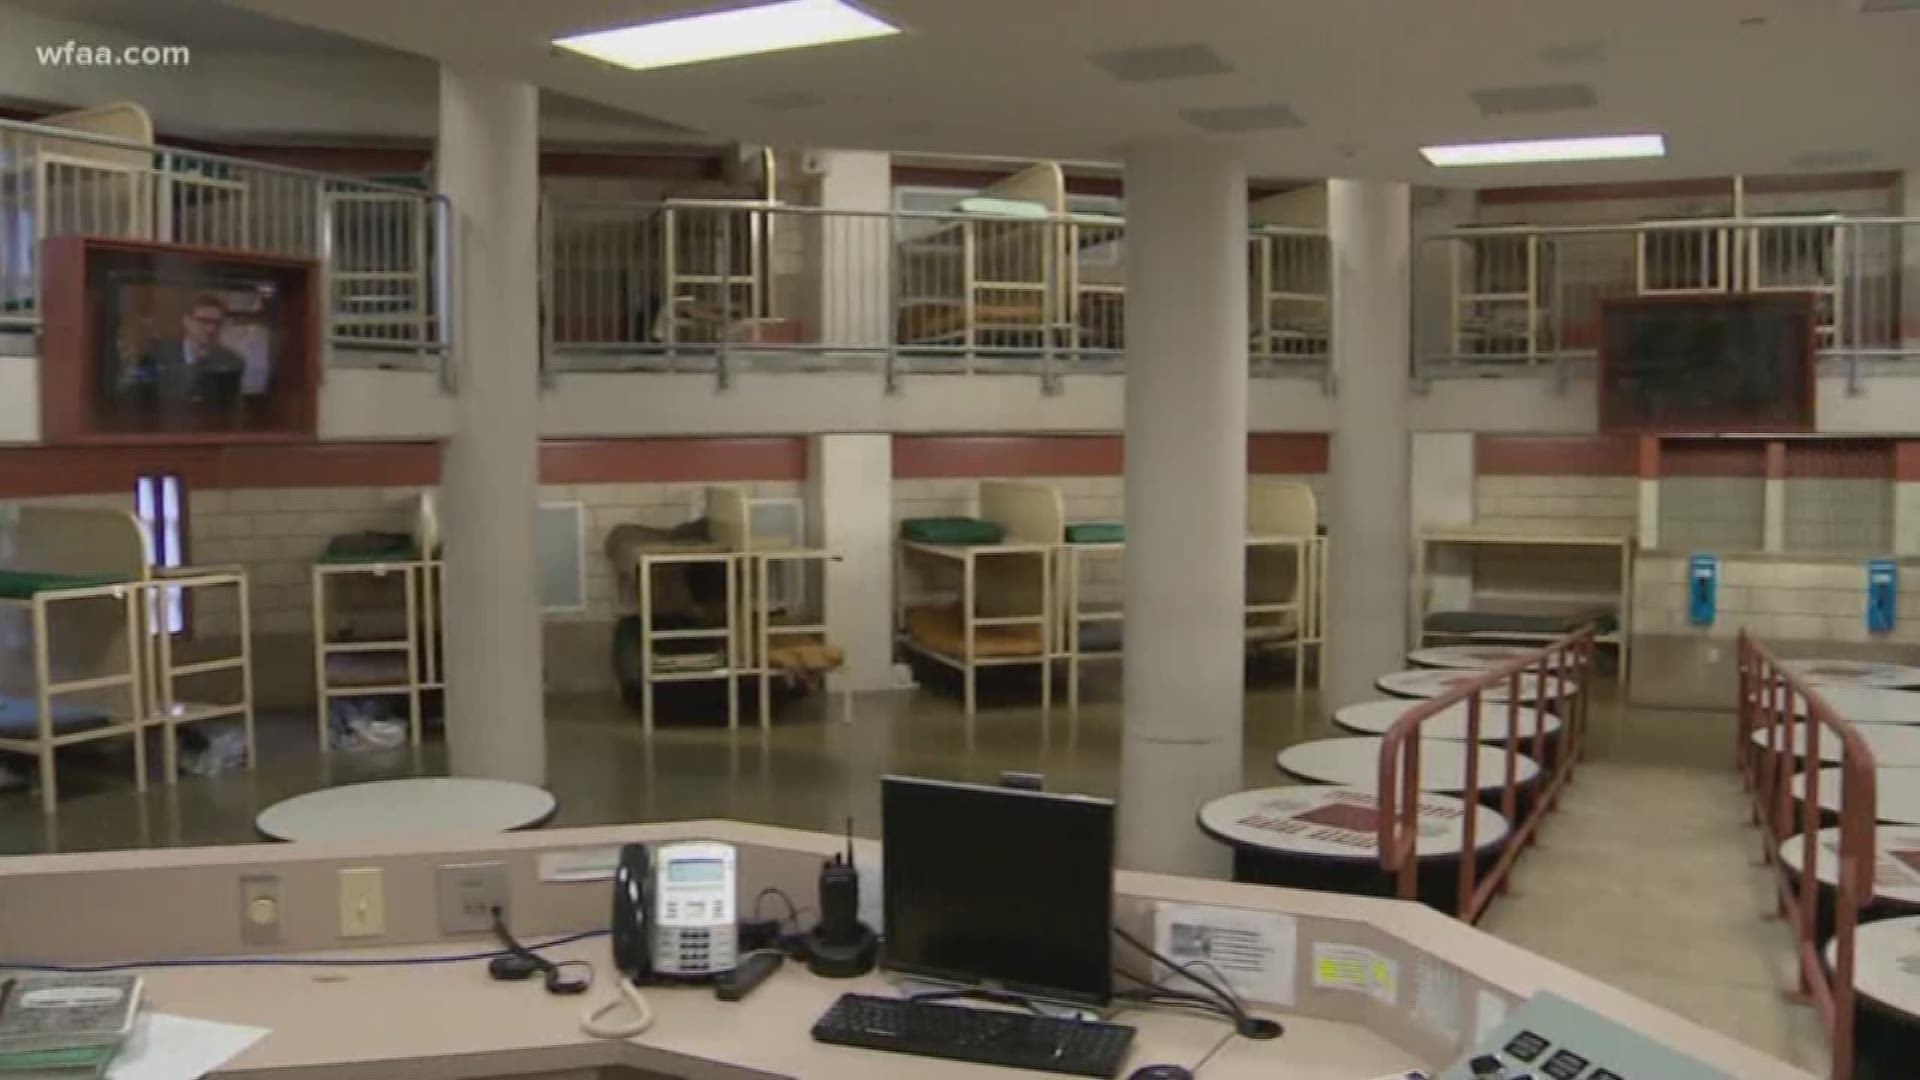 Dallas County Inmates File Federal Lawsuit Asking For Release Amid Soaring Coronavirus Cases Wfaa Com